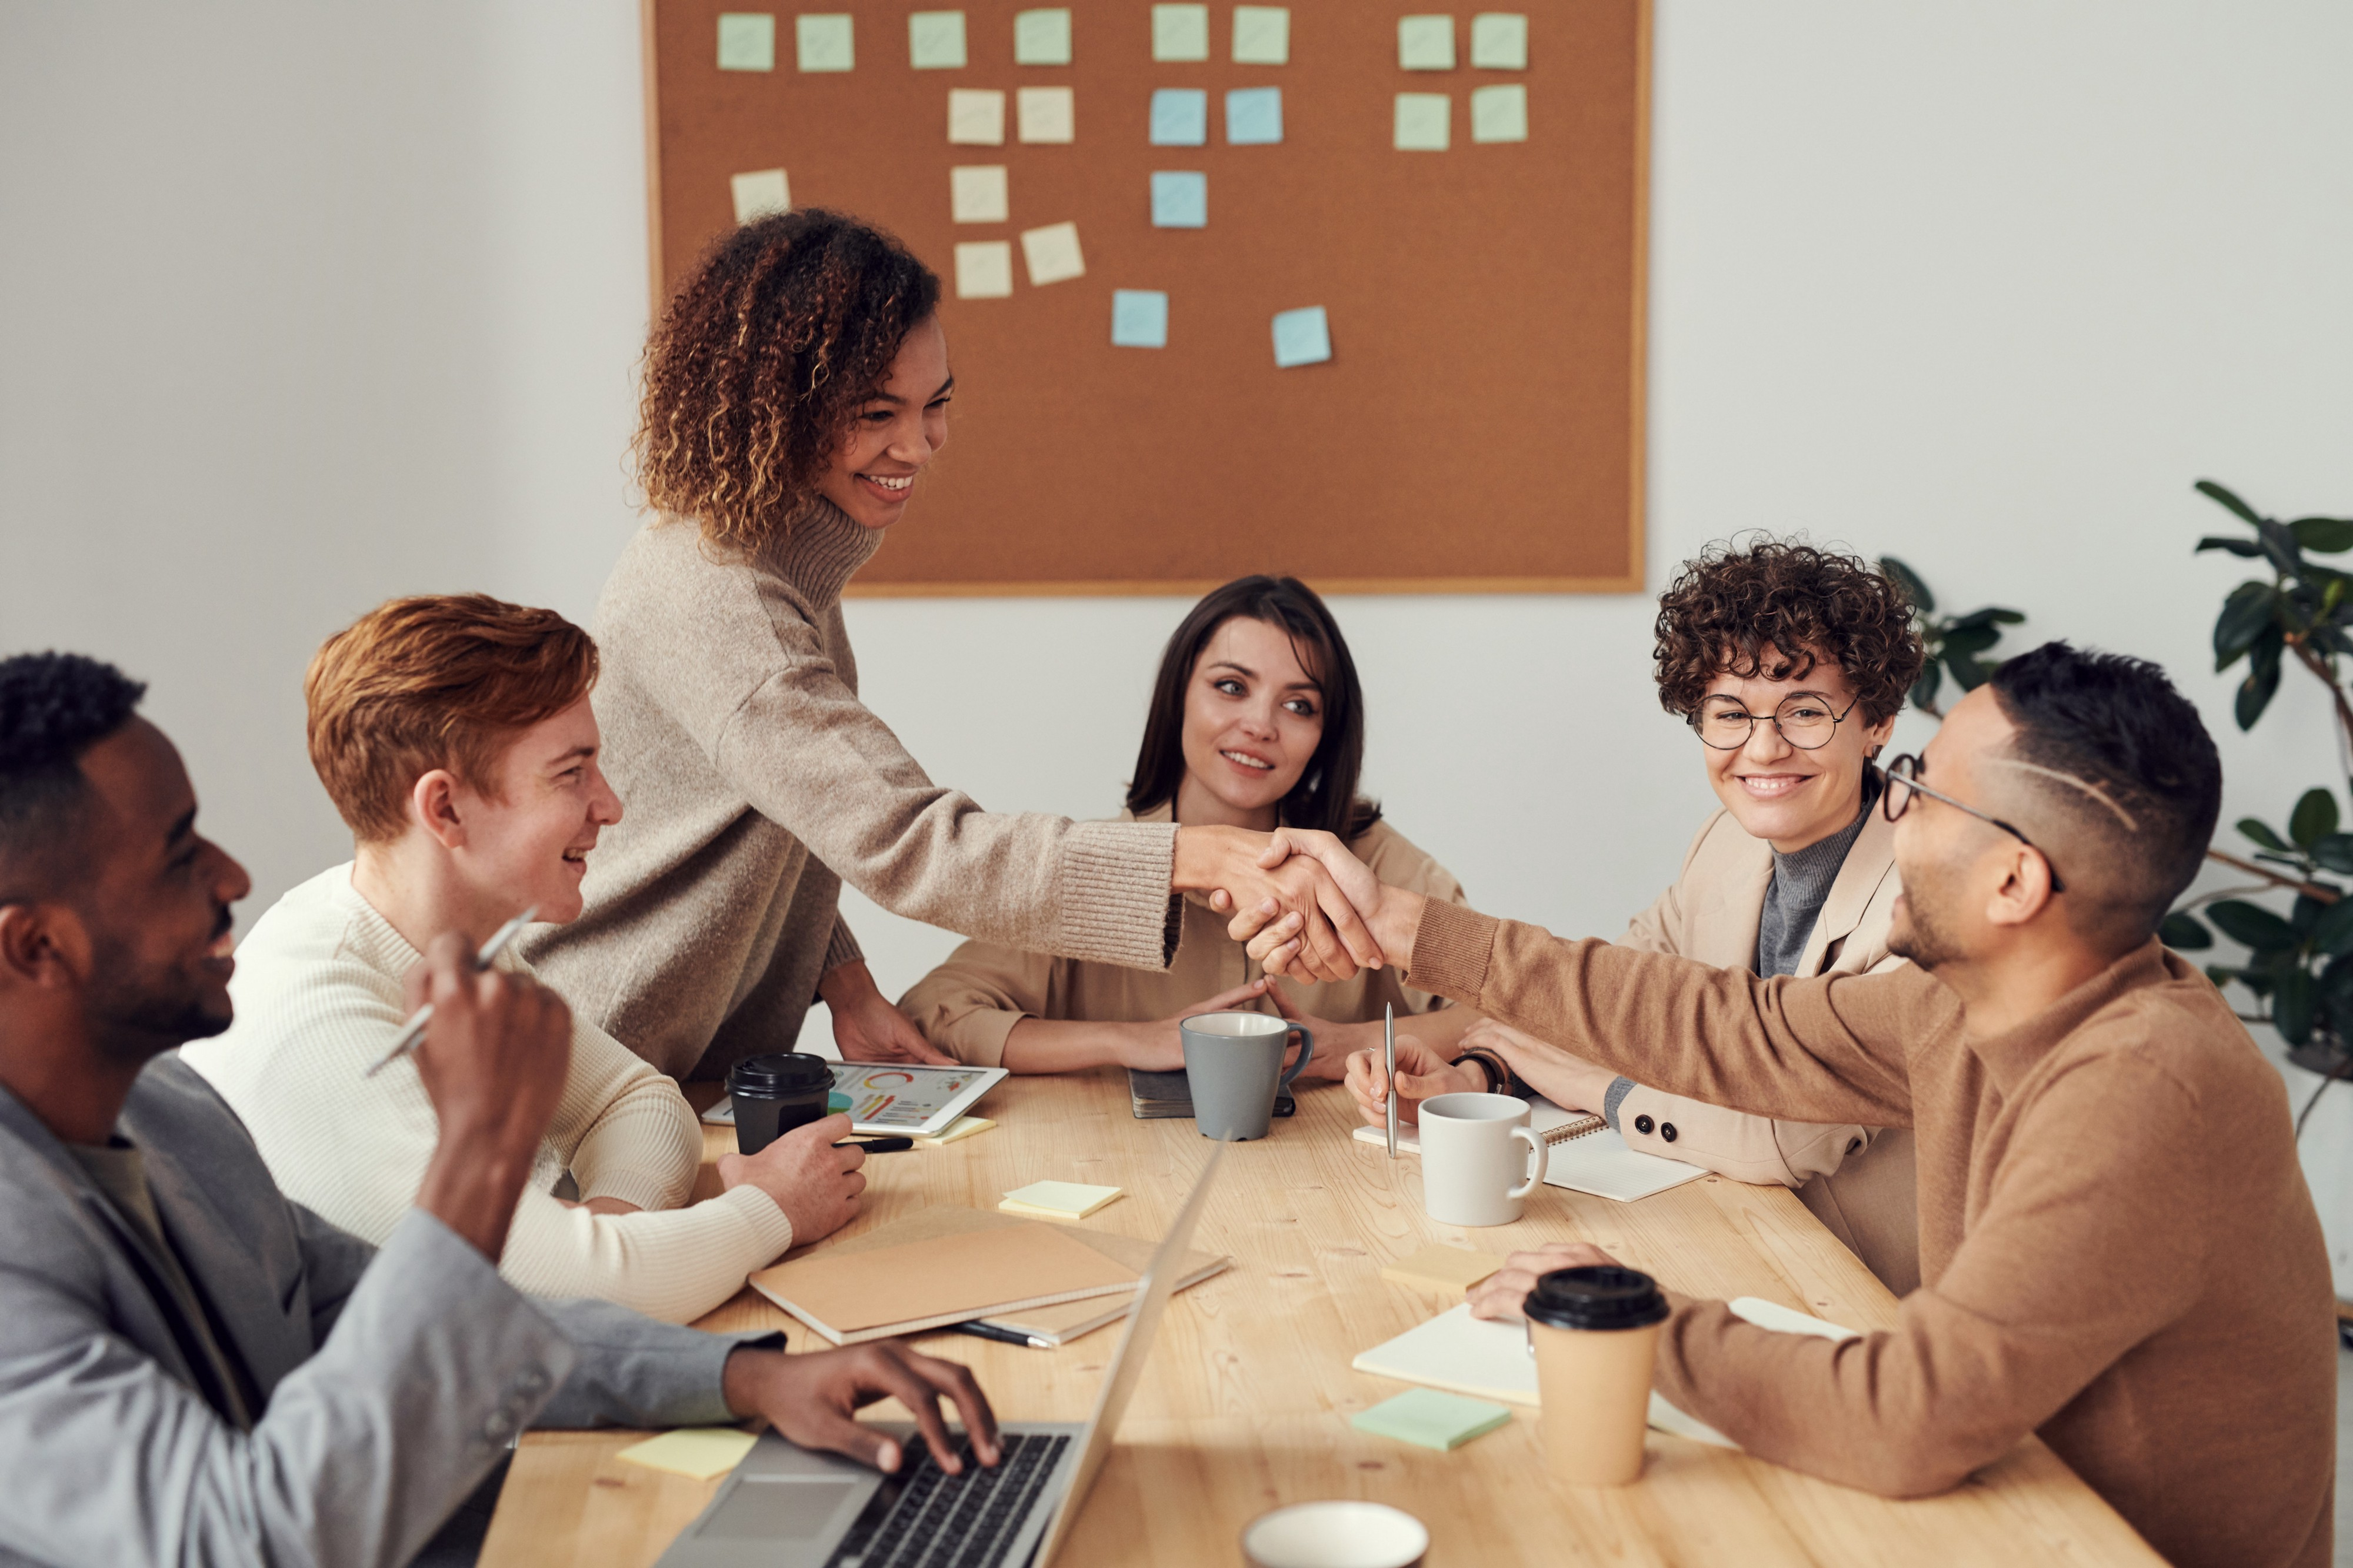 Make Your Customers a Part of the Team